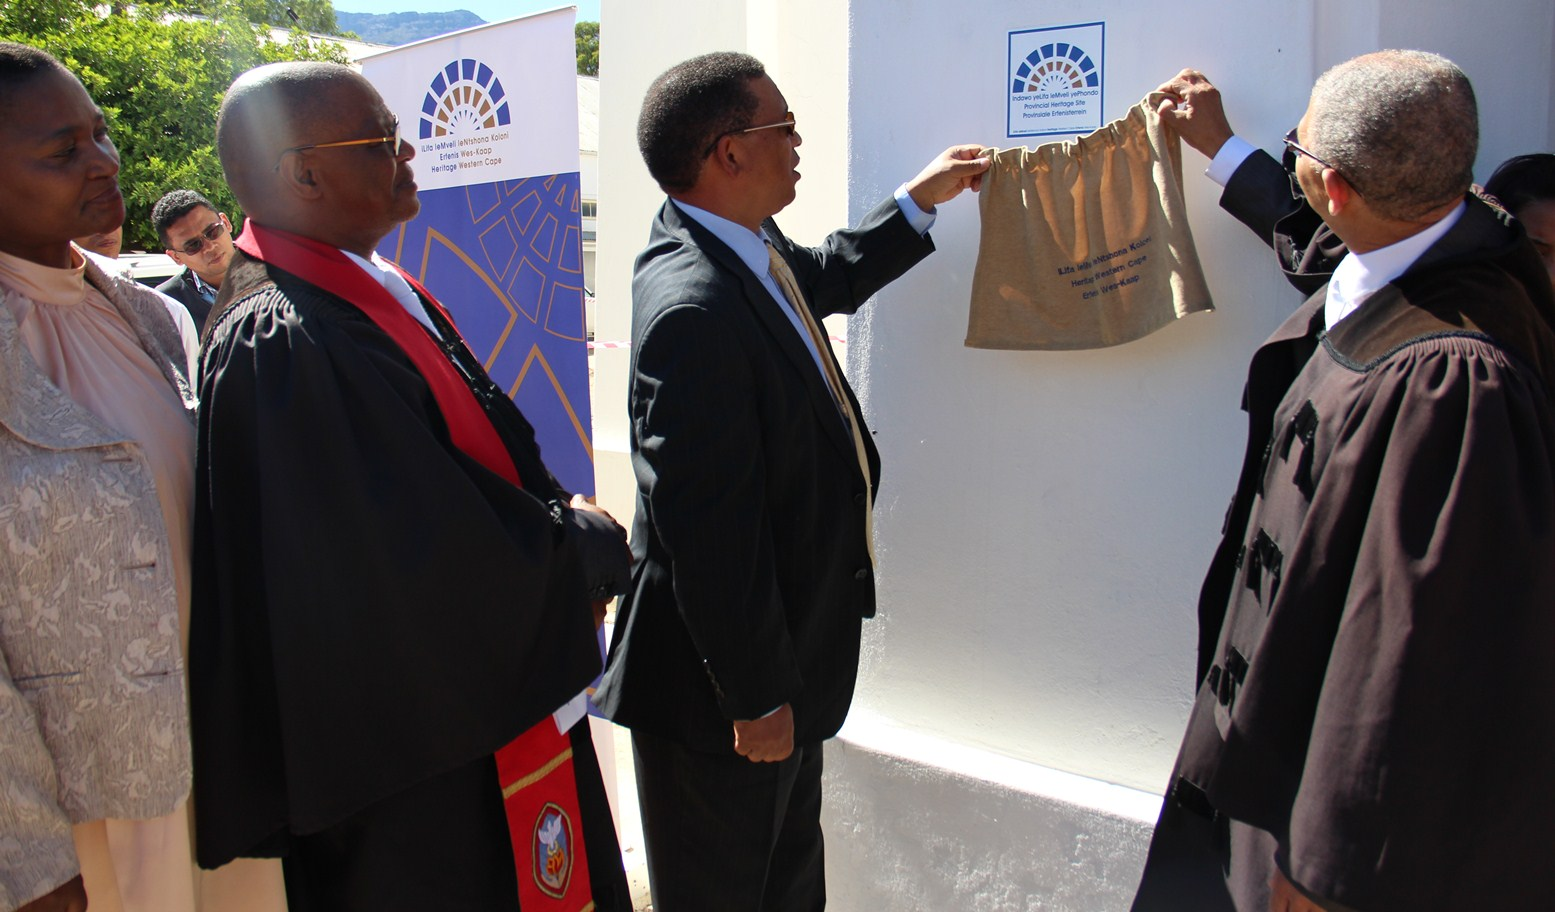 Minister Meyer and Reverend Cloete unveil the heritage badge at the United Reformed Church.